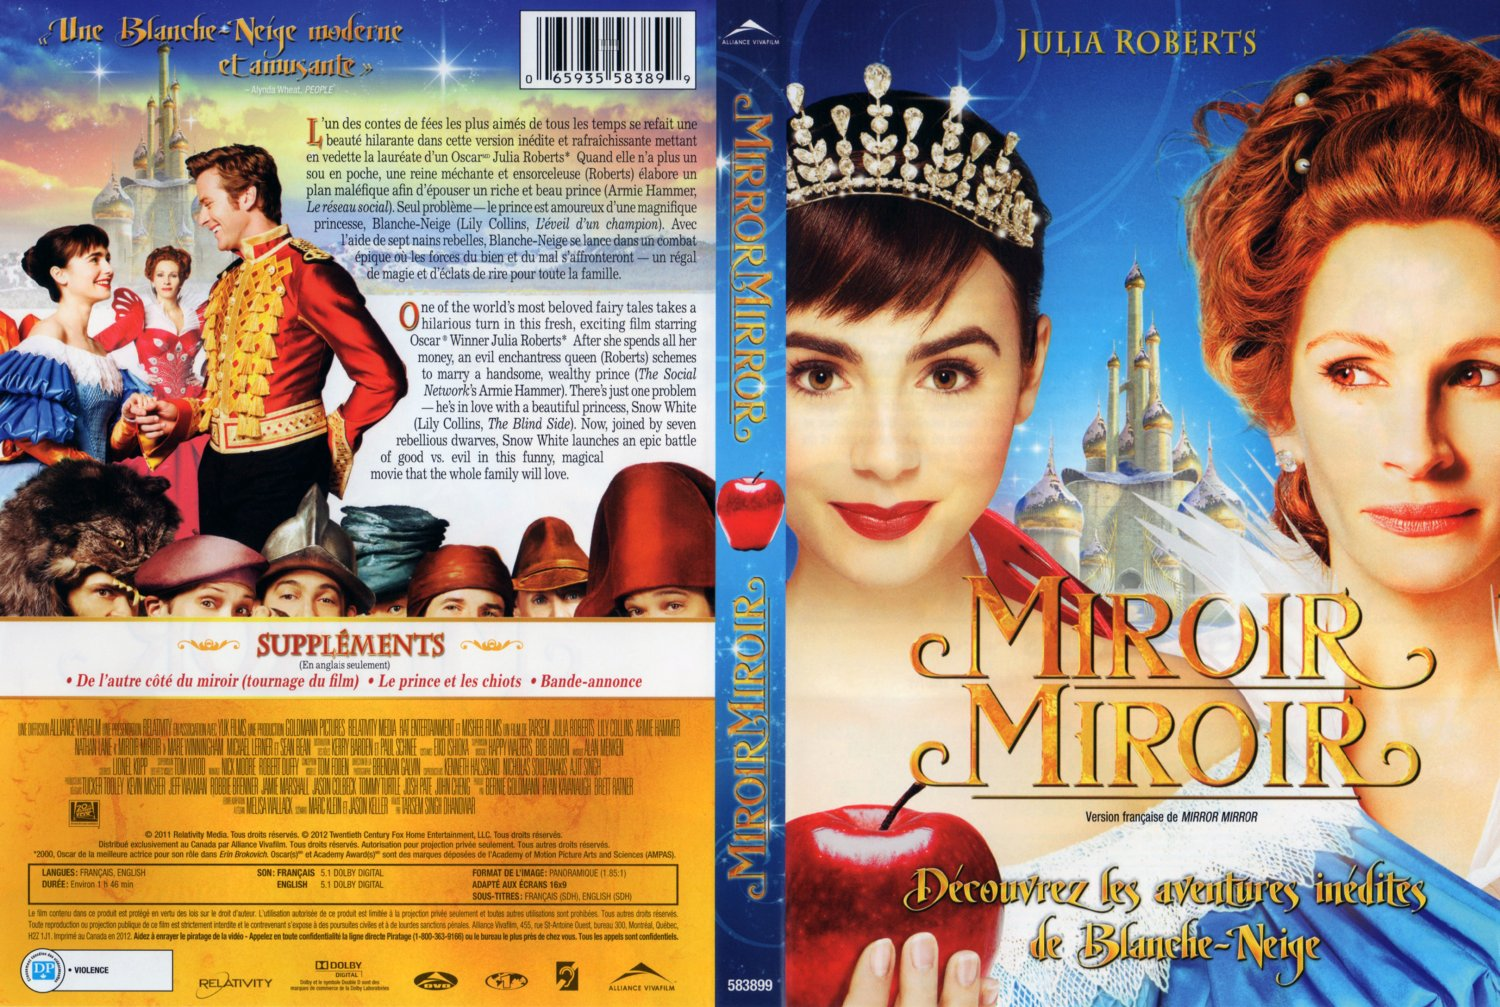 Miroir miroir mirror mirror movie dvd scanned covers for Miroir miroir